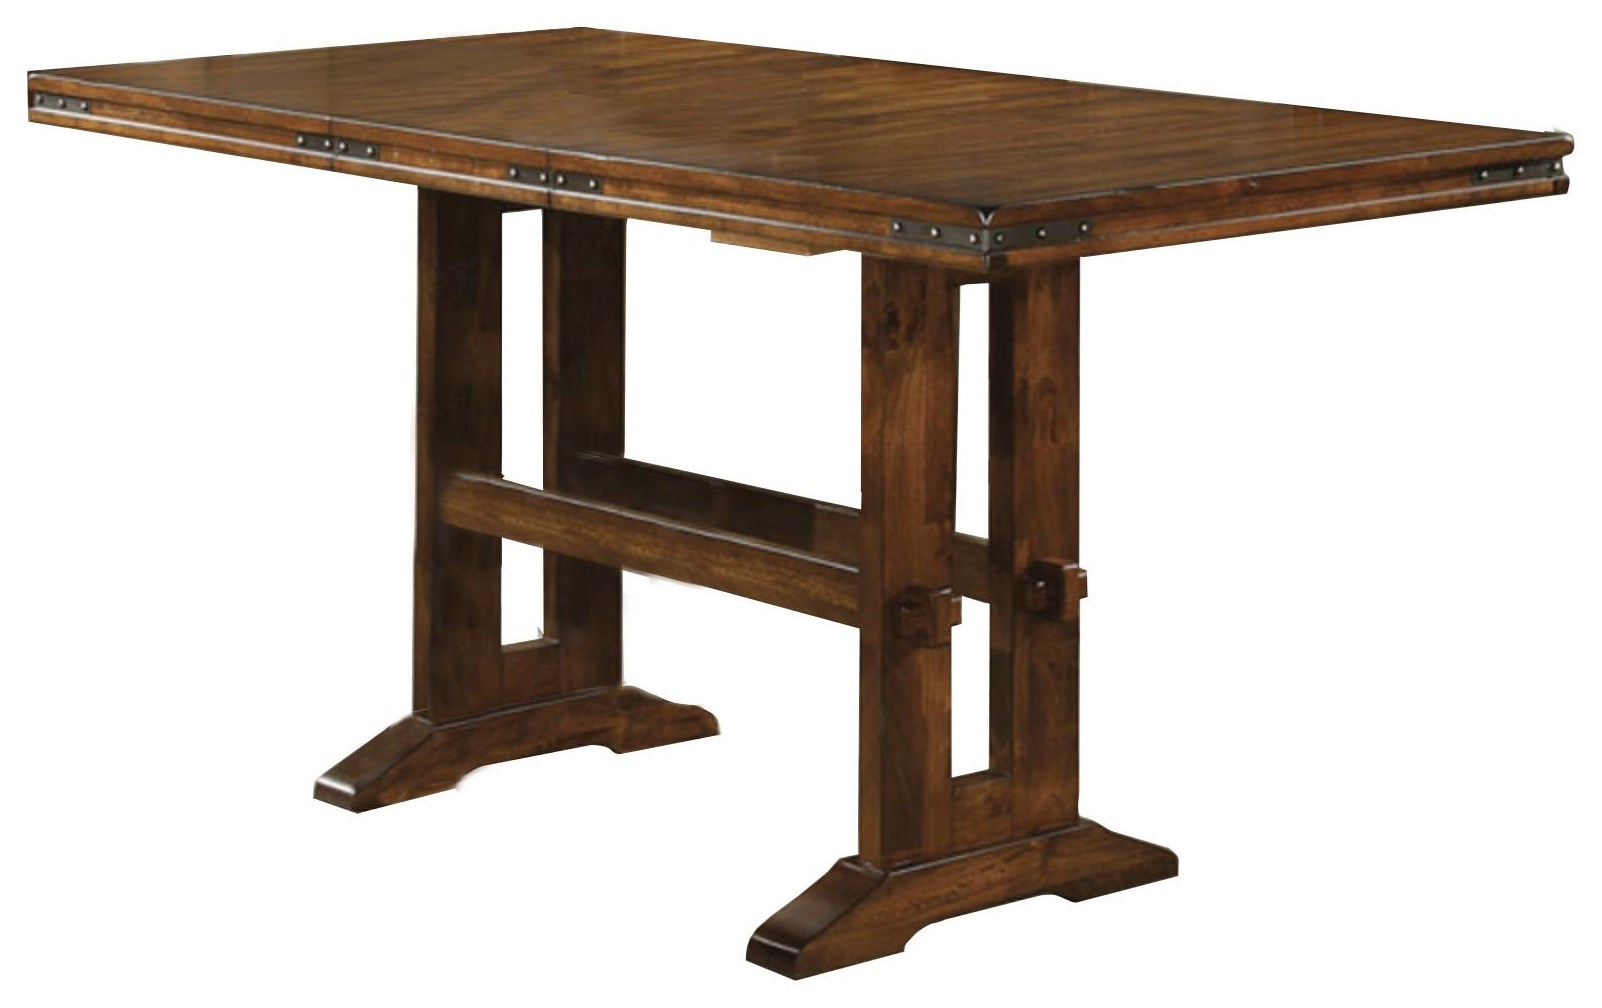 Tall Trestle Table at Sadler's Home Furnishings